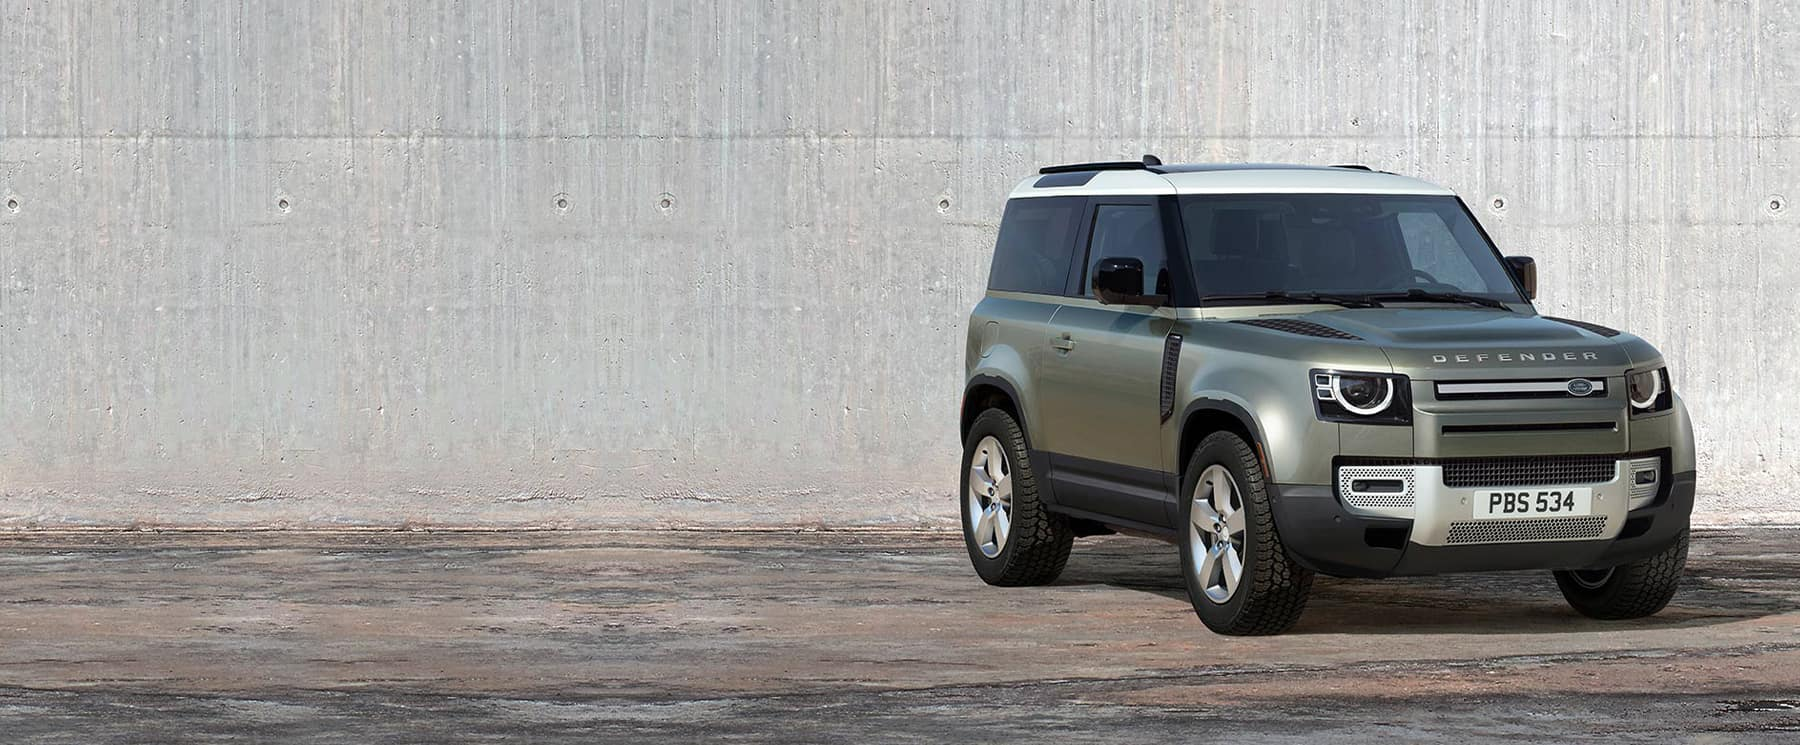 2020 Land Rover Defender Model Overview at Land Rover Louisville